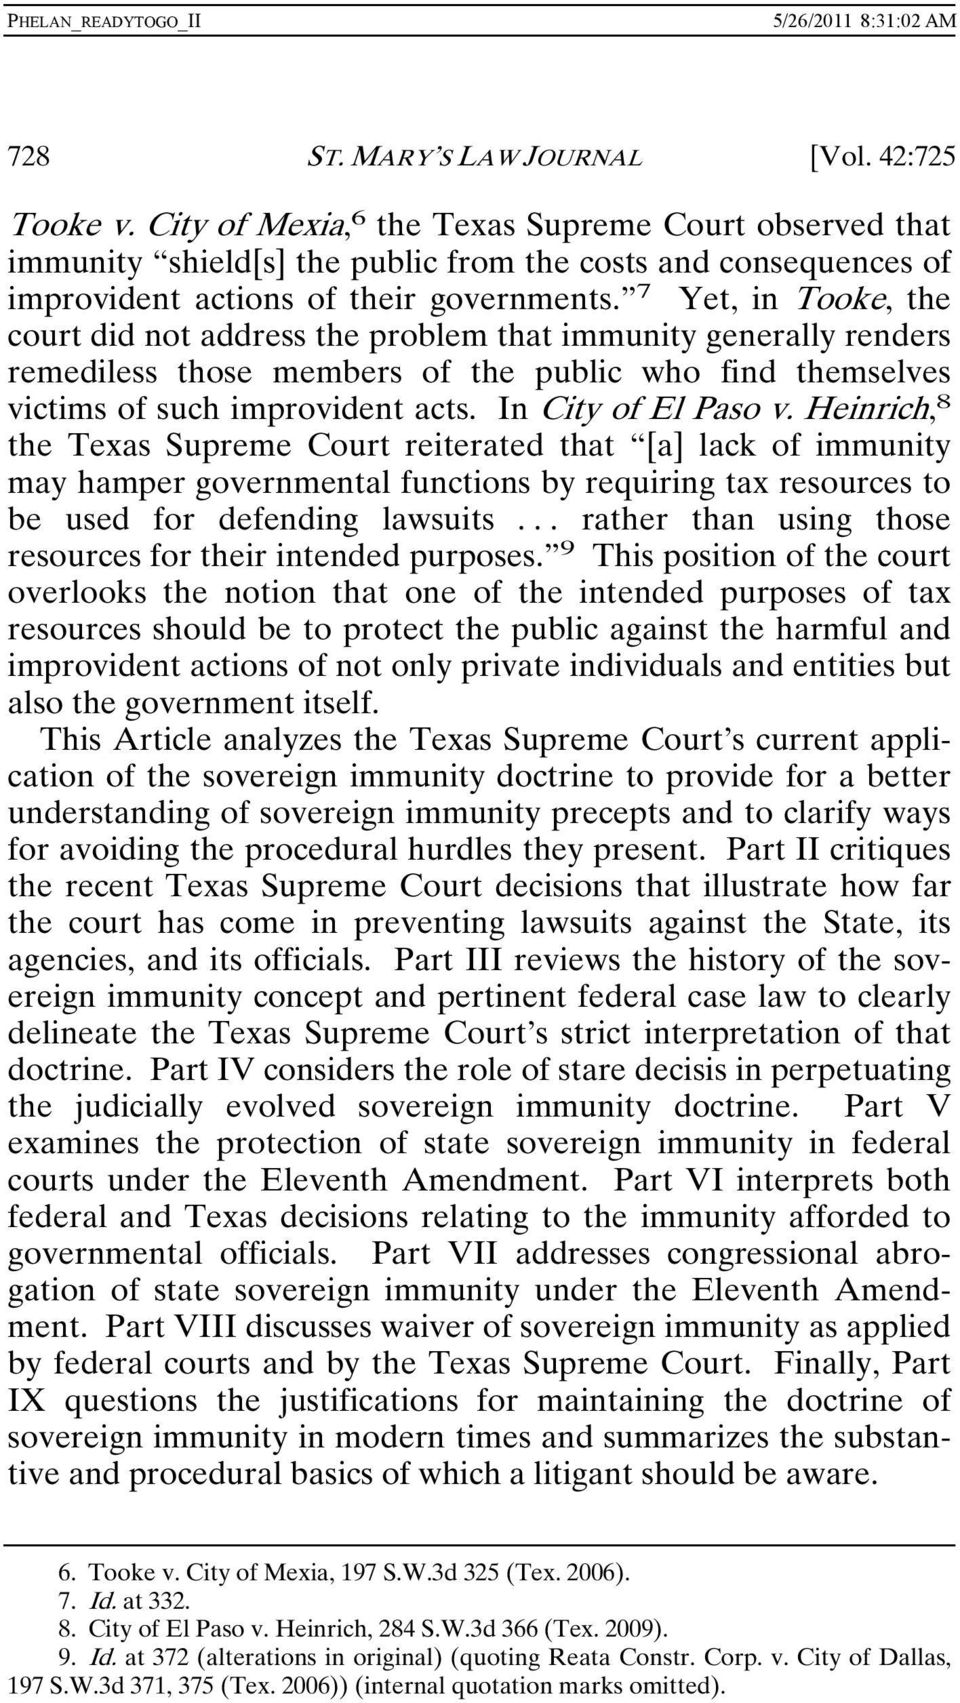 7 Yet, in Tooke, the court did not address the problem that immunity generally renders remediless those members of the public who find themselves victims of such improvident acts.